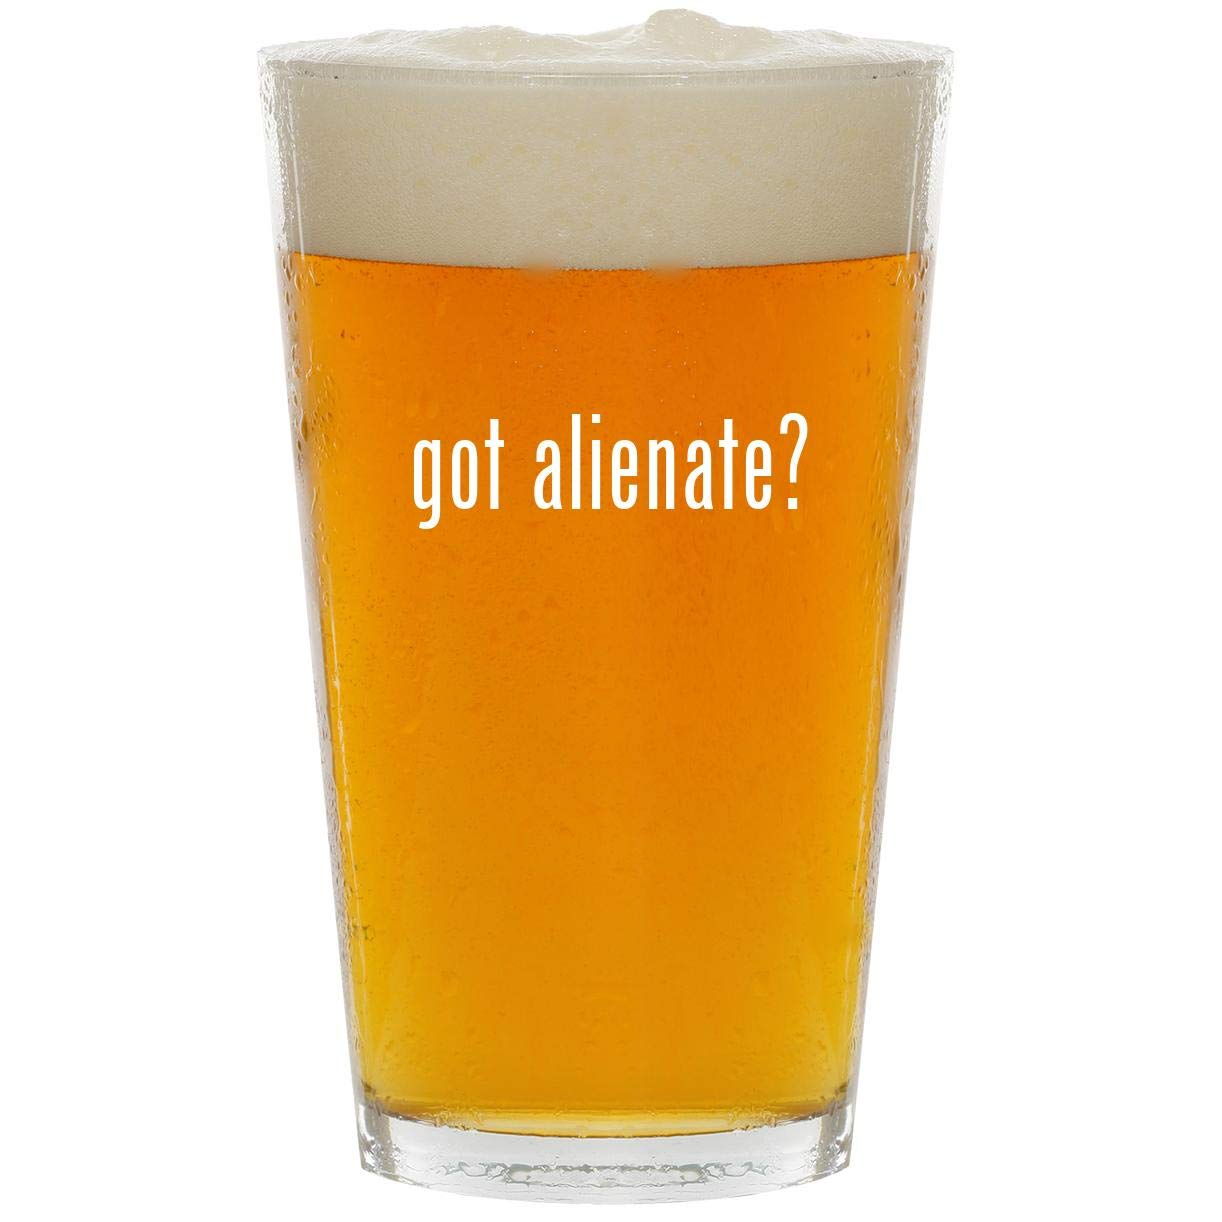 got alienate? - Glass 16oz Beer Pint